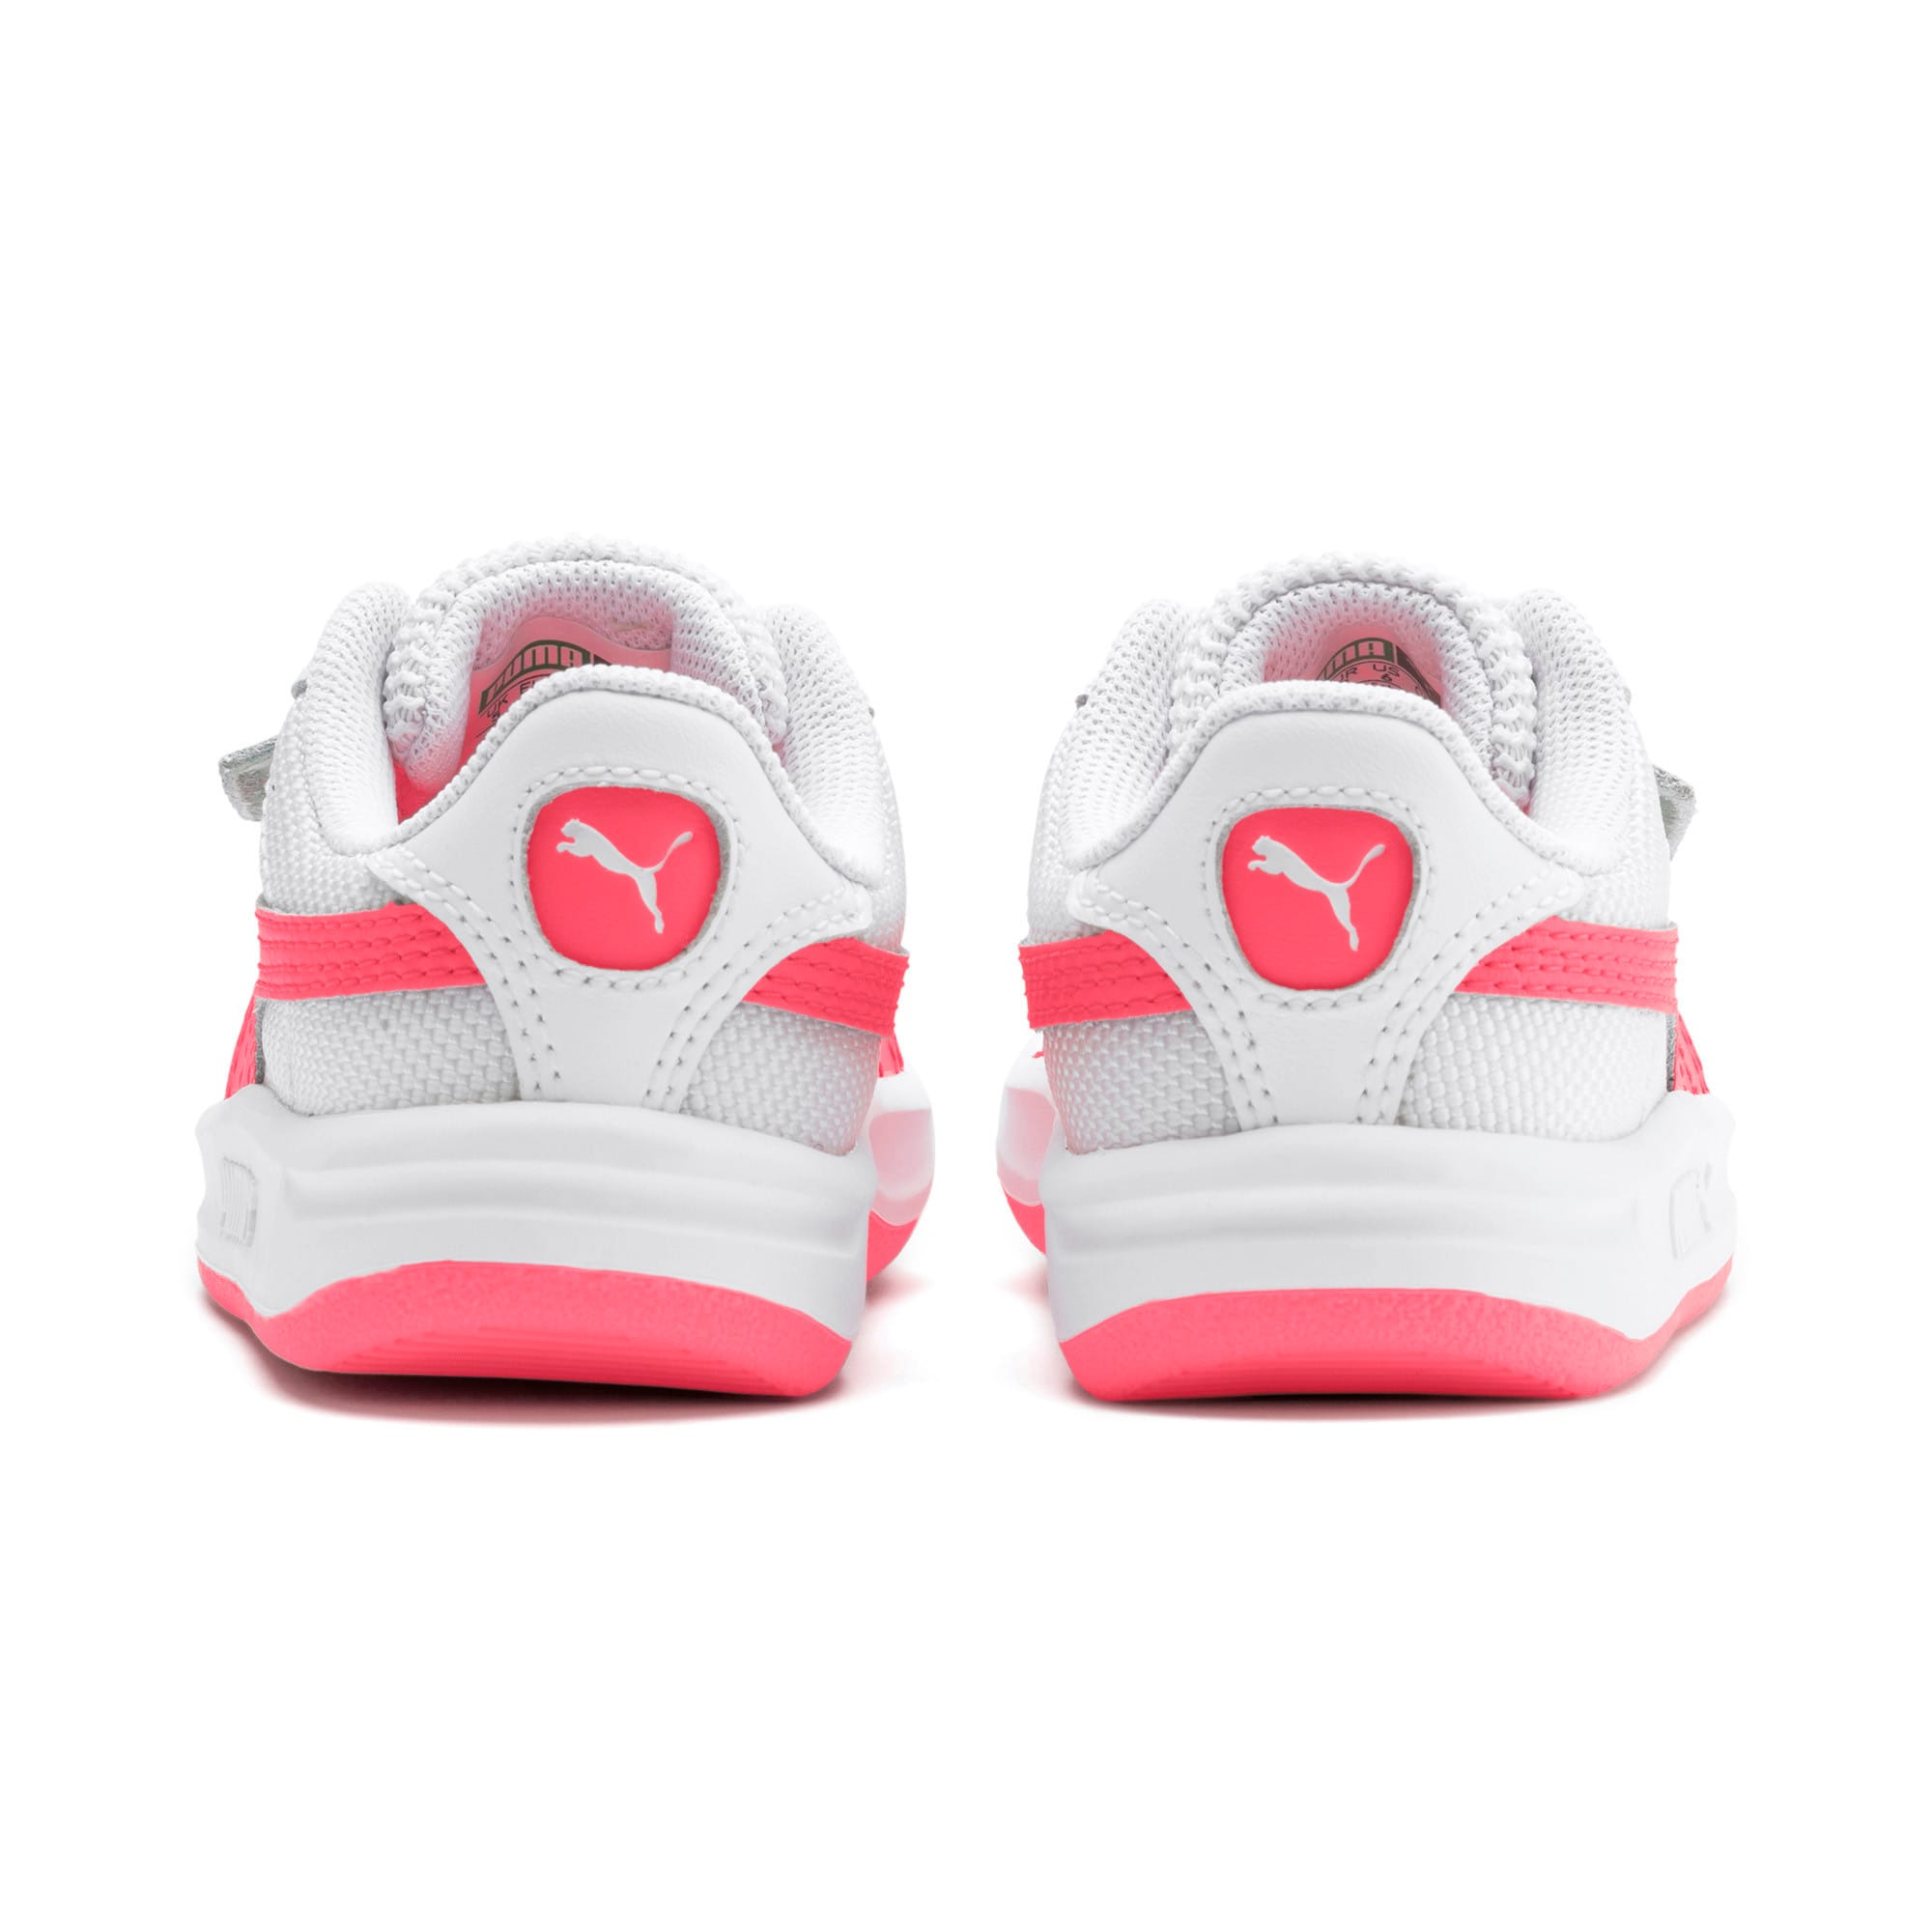 Thumbnail 3 of California Toddler Shoes, Puma White-Pink Alert, medium